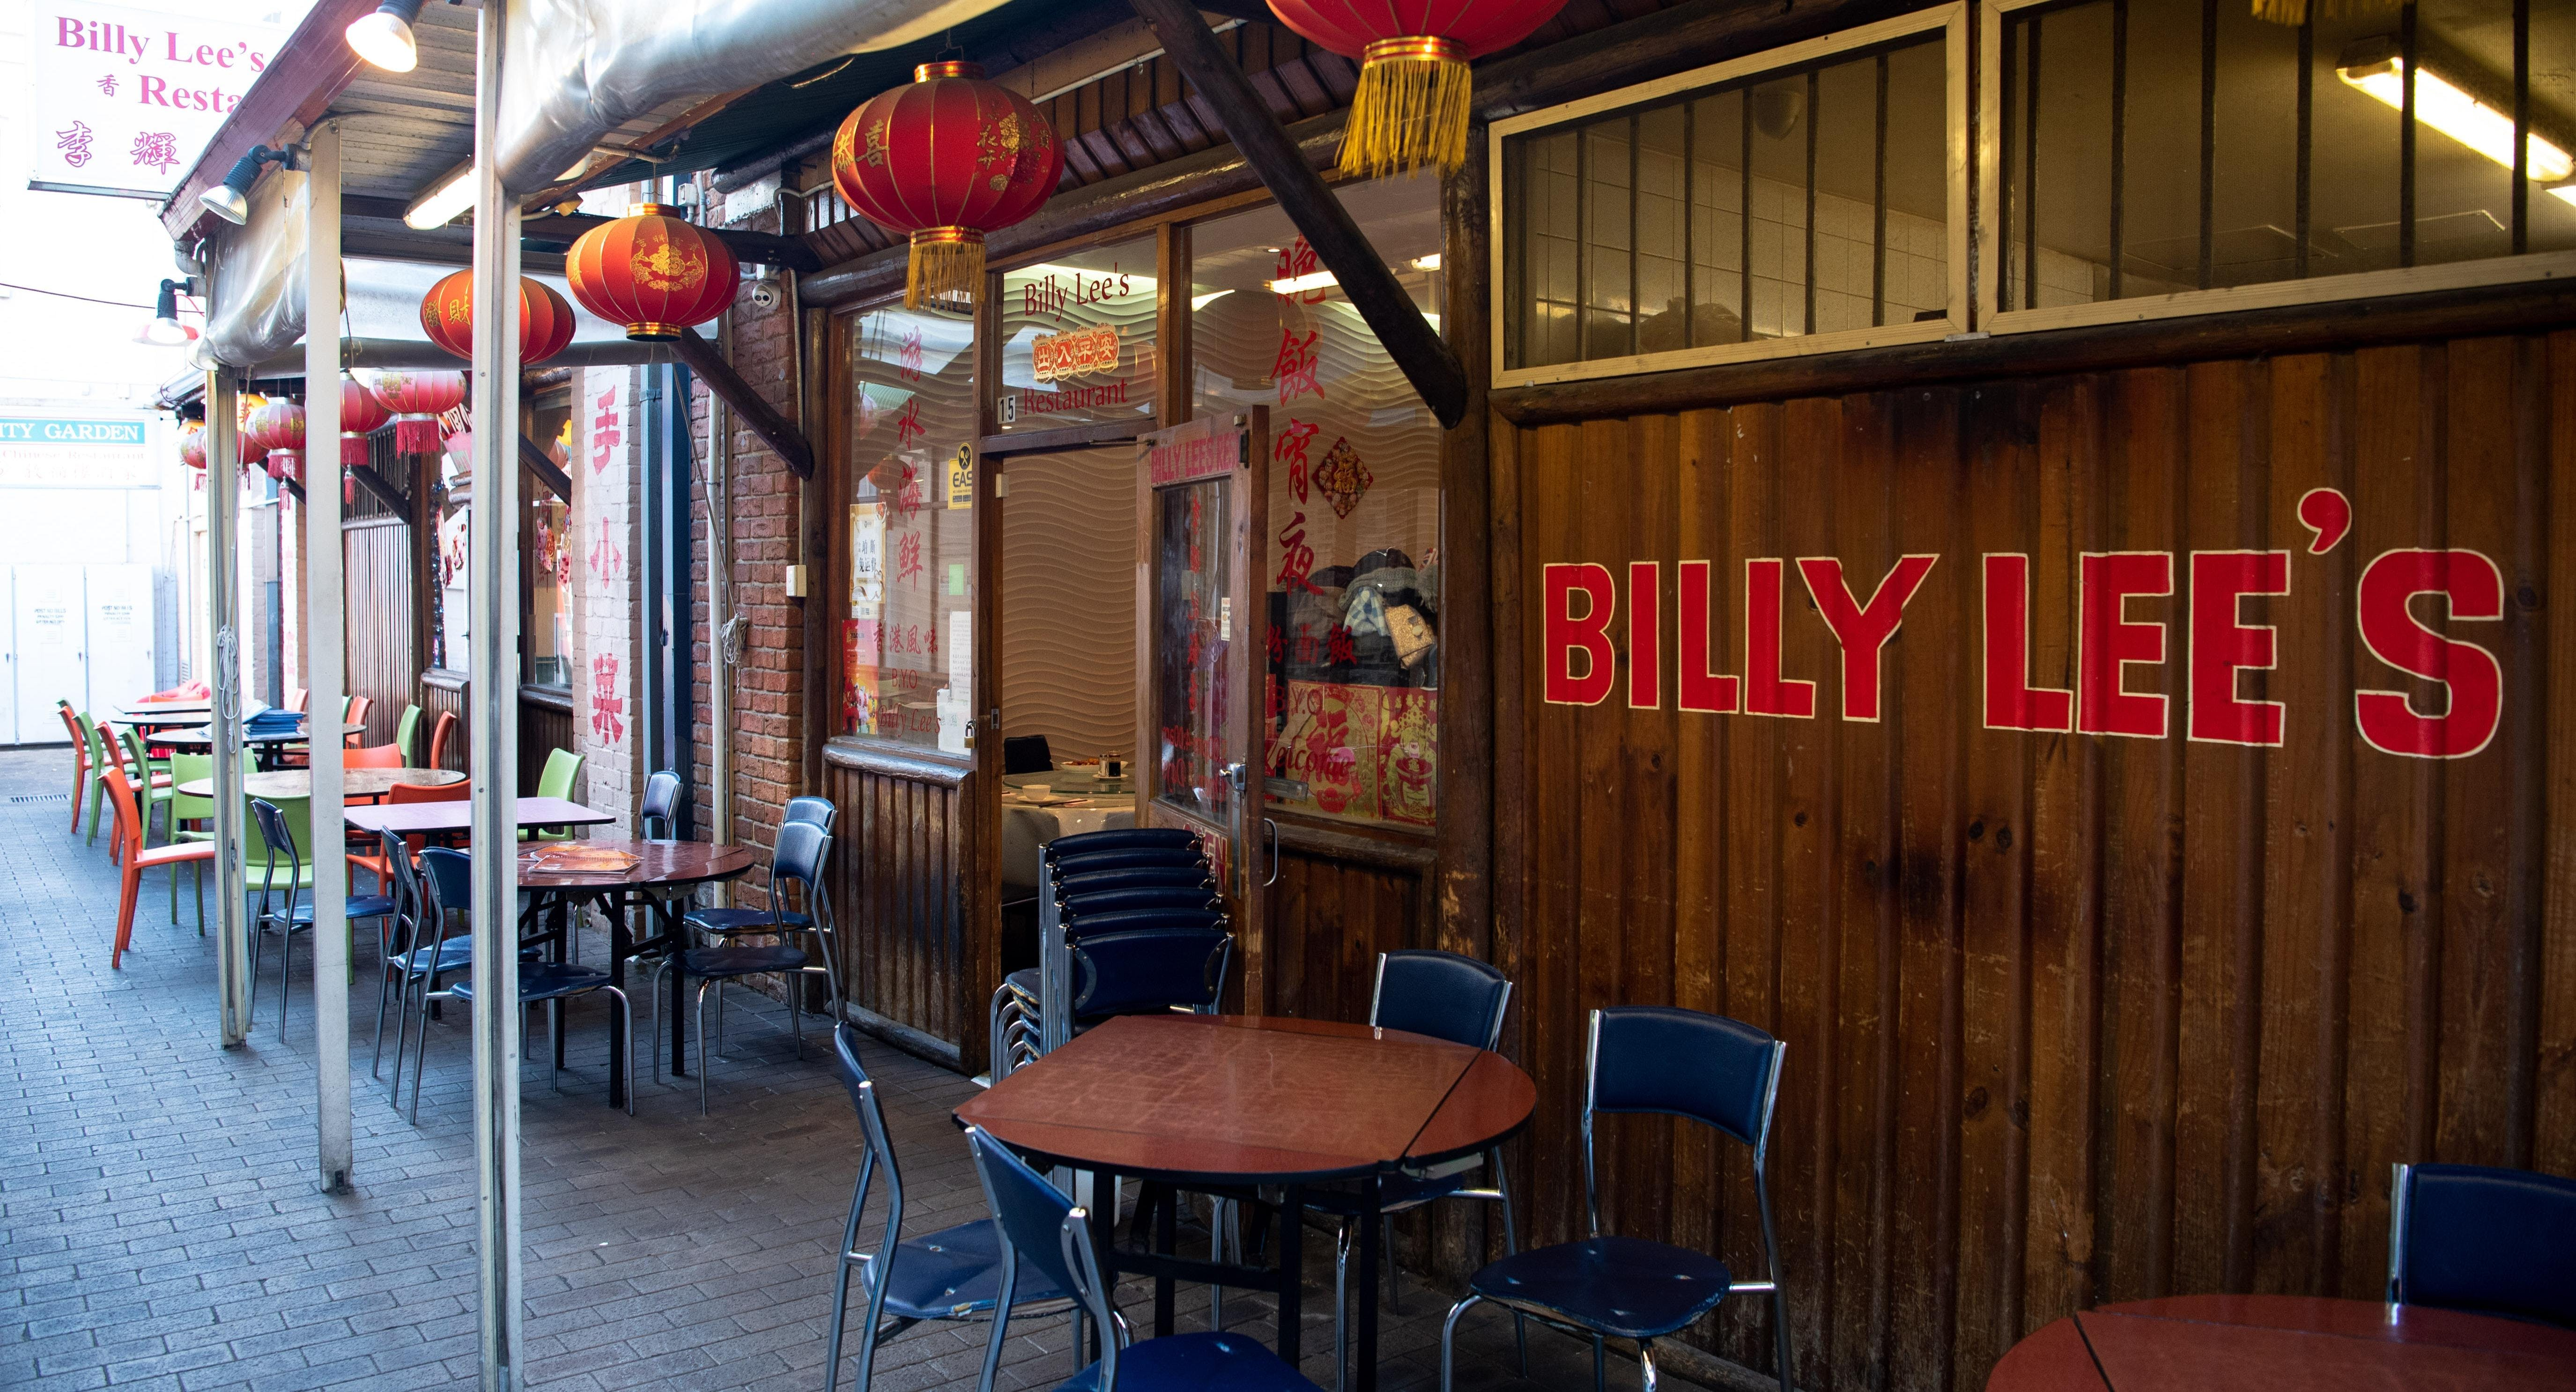 Billy Lee's Chinese Restaurant